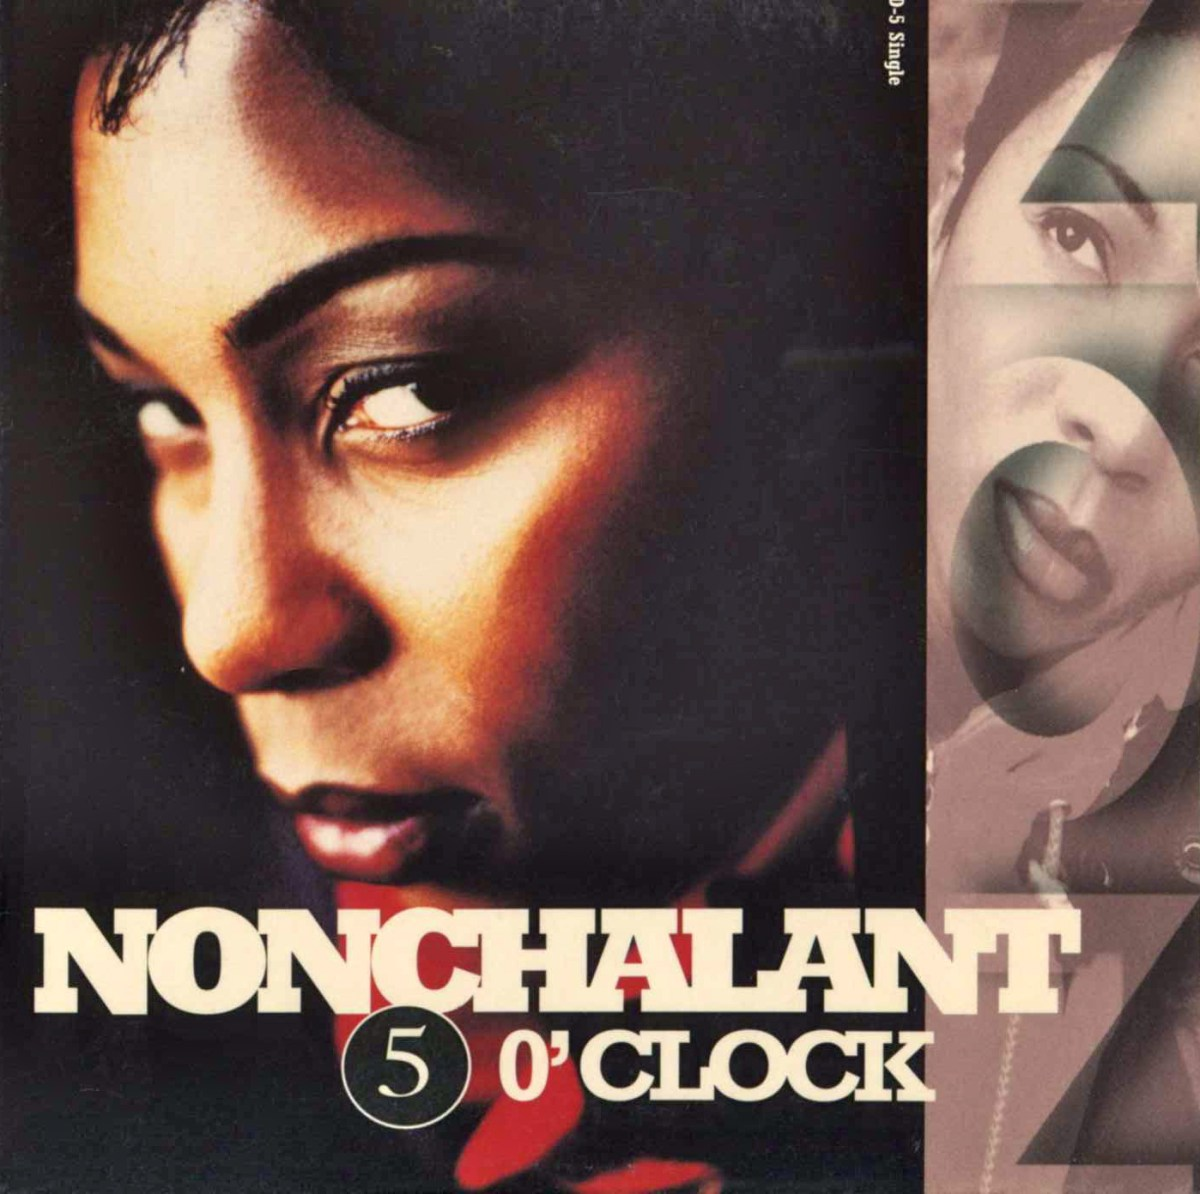 THROWBACK FRIDAY Nonchalant ft Drecia Vega  Bink Woods